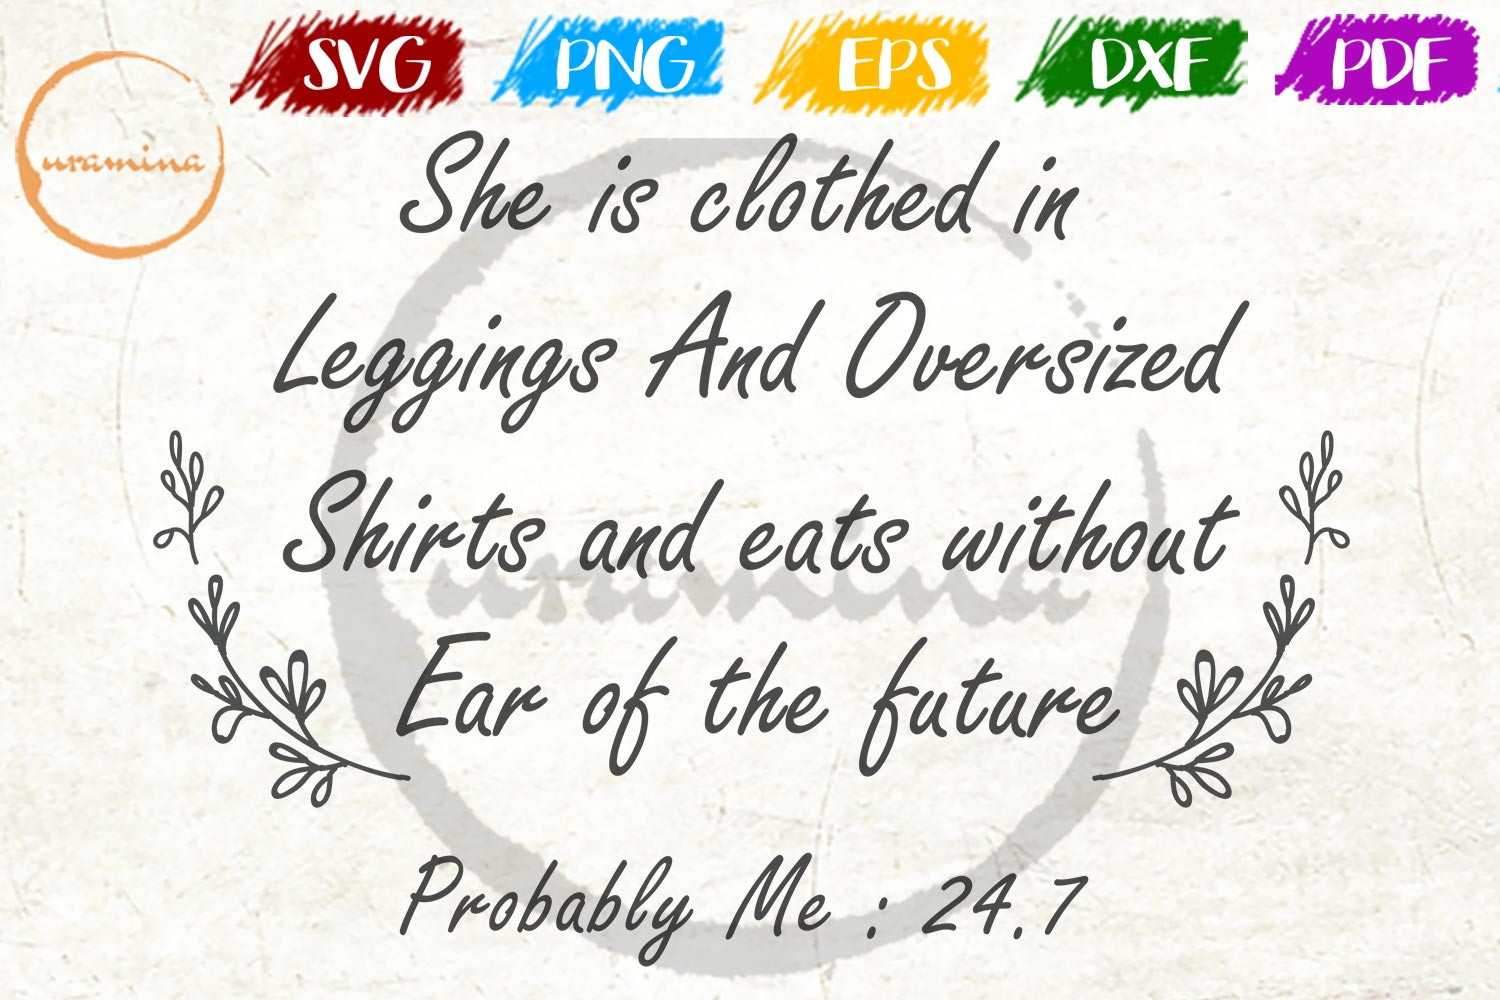 She Is Clothed In Leggings And Oversized Graphic By Uramina